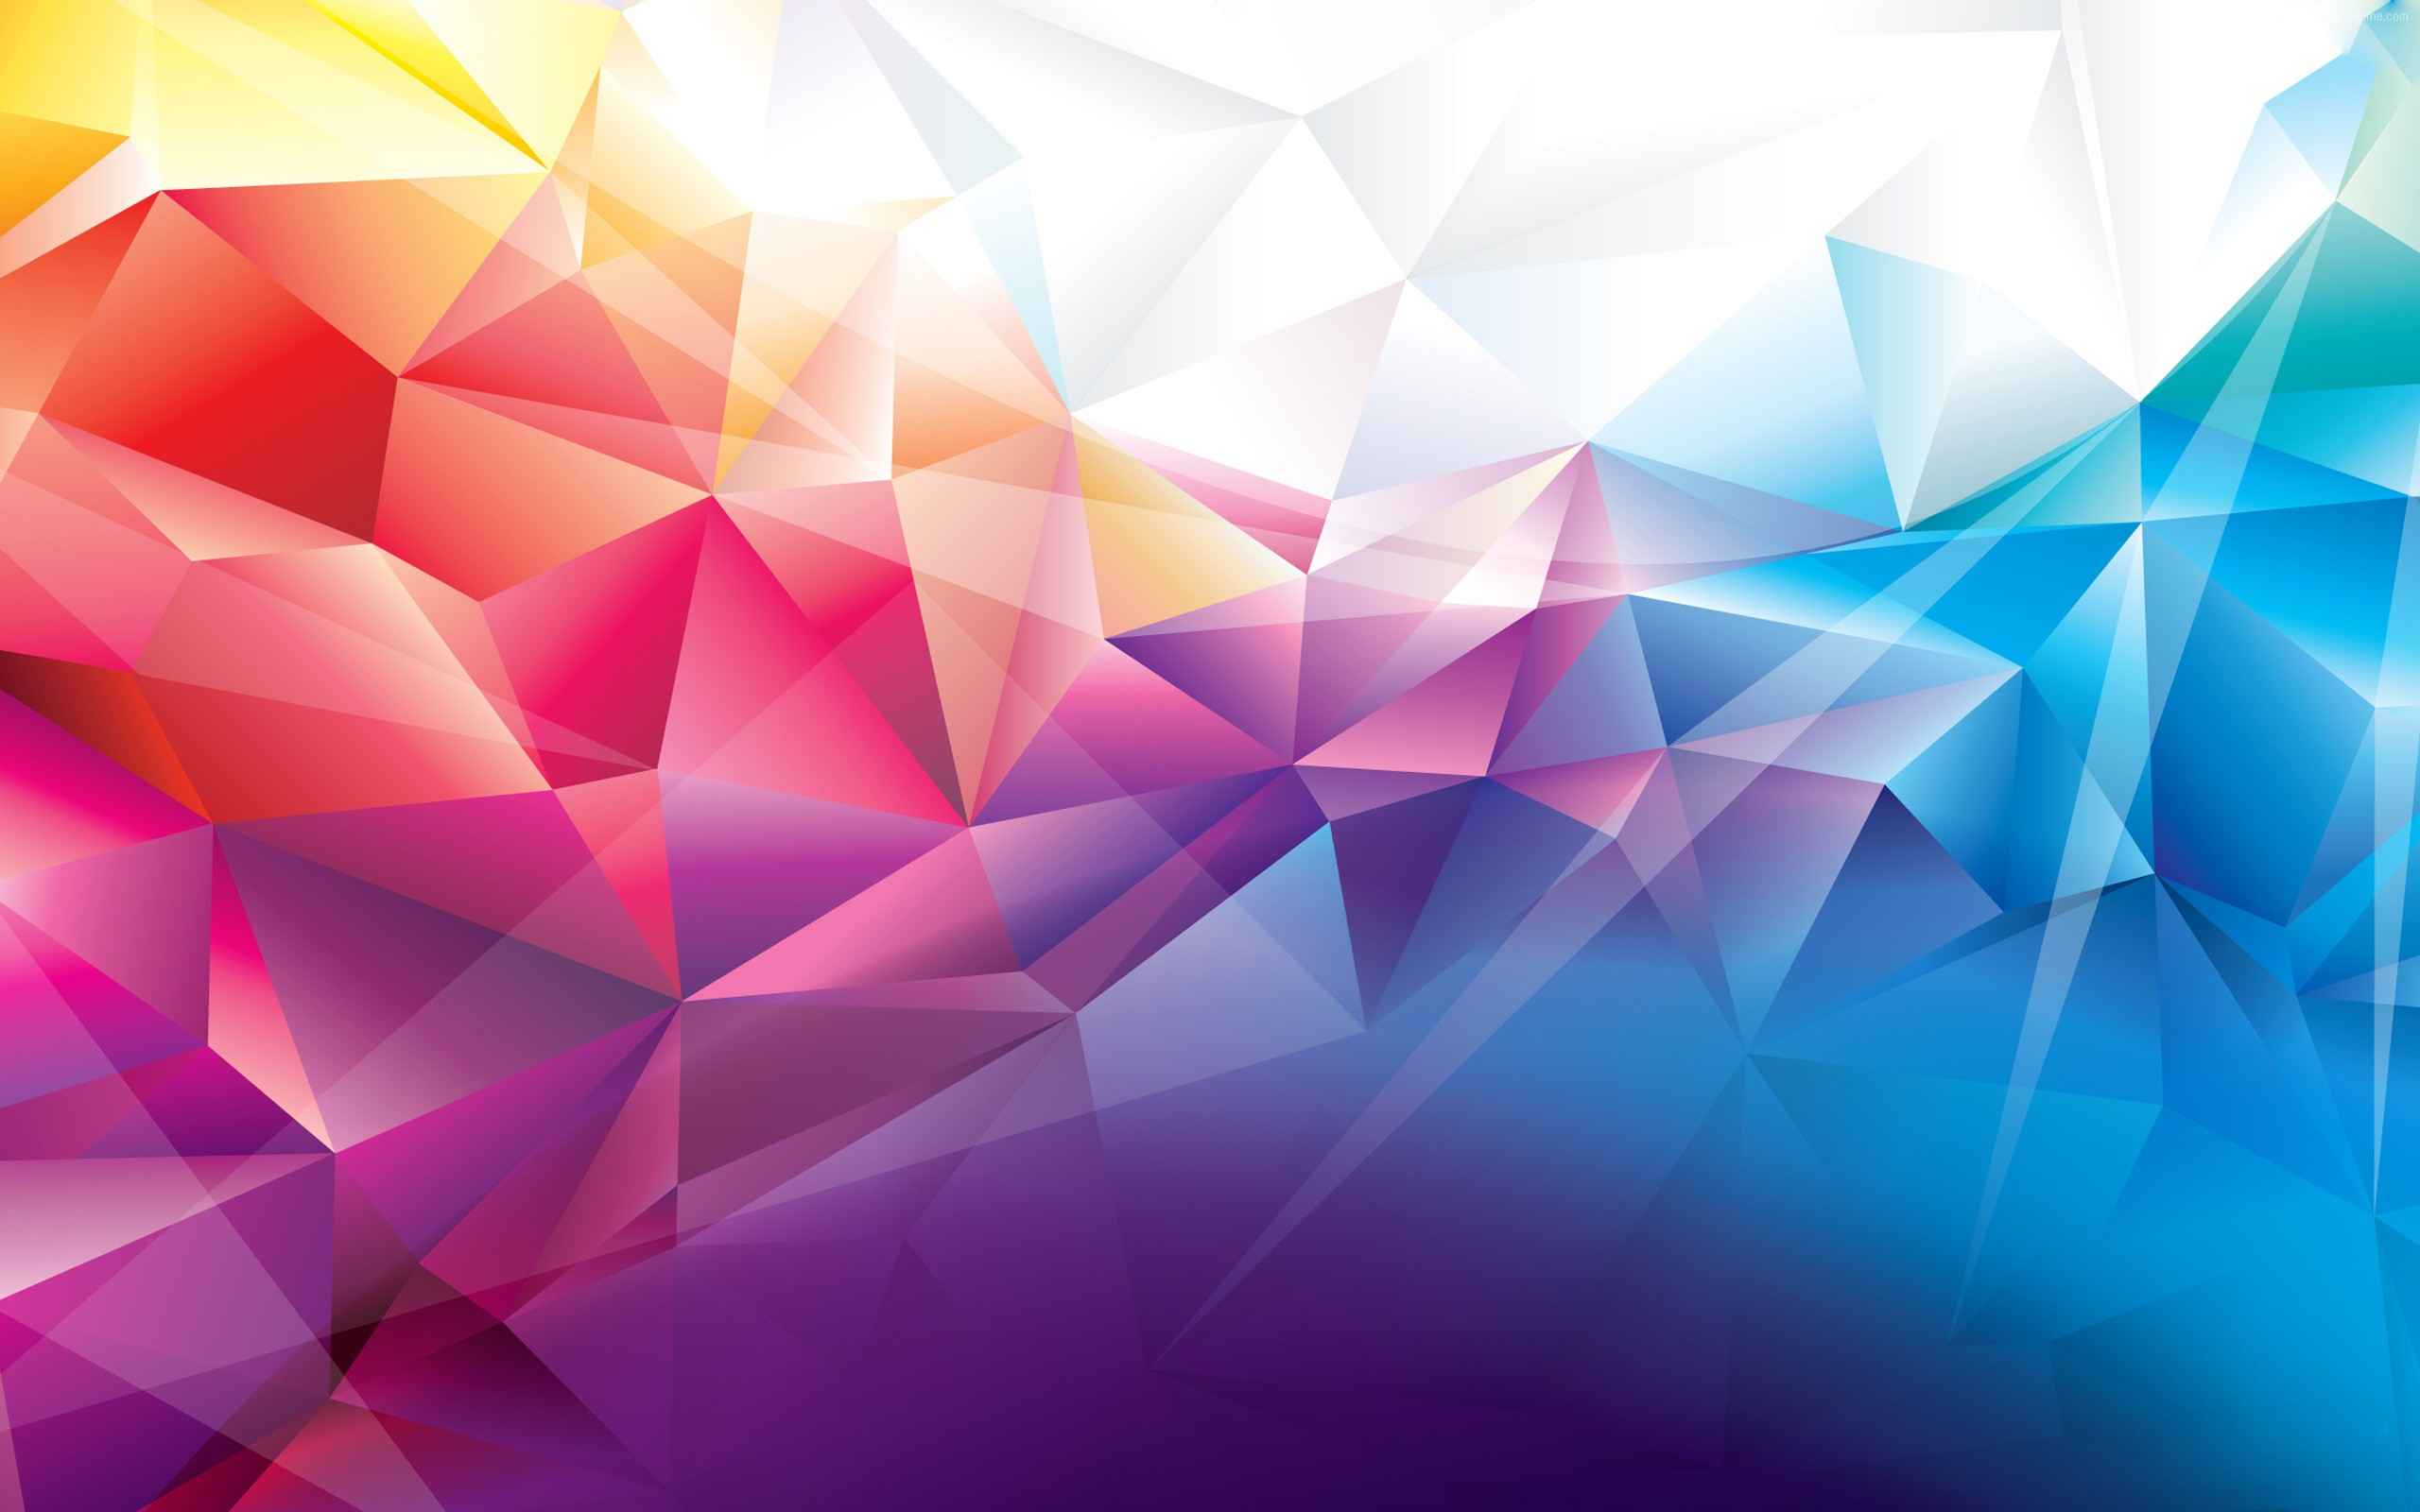 Abstract Background - HD Wallpapers Backgrounds of Your Choice